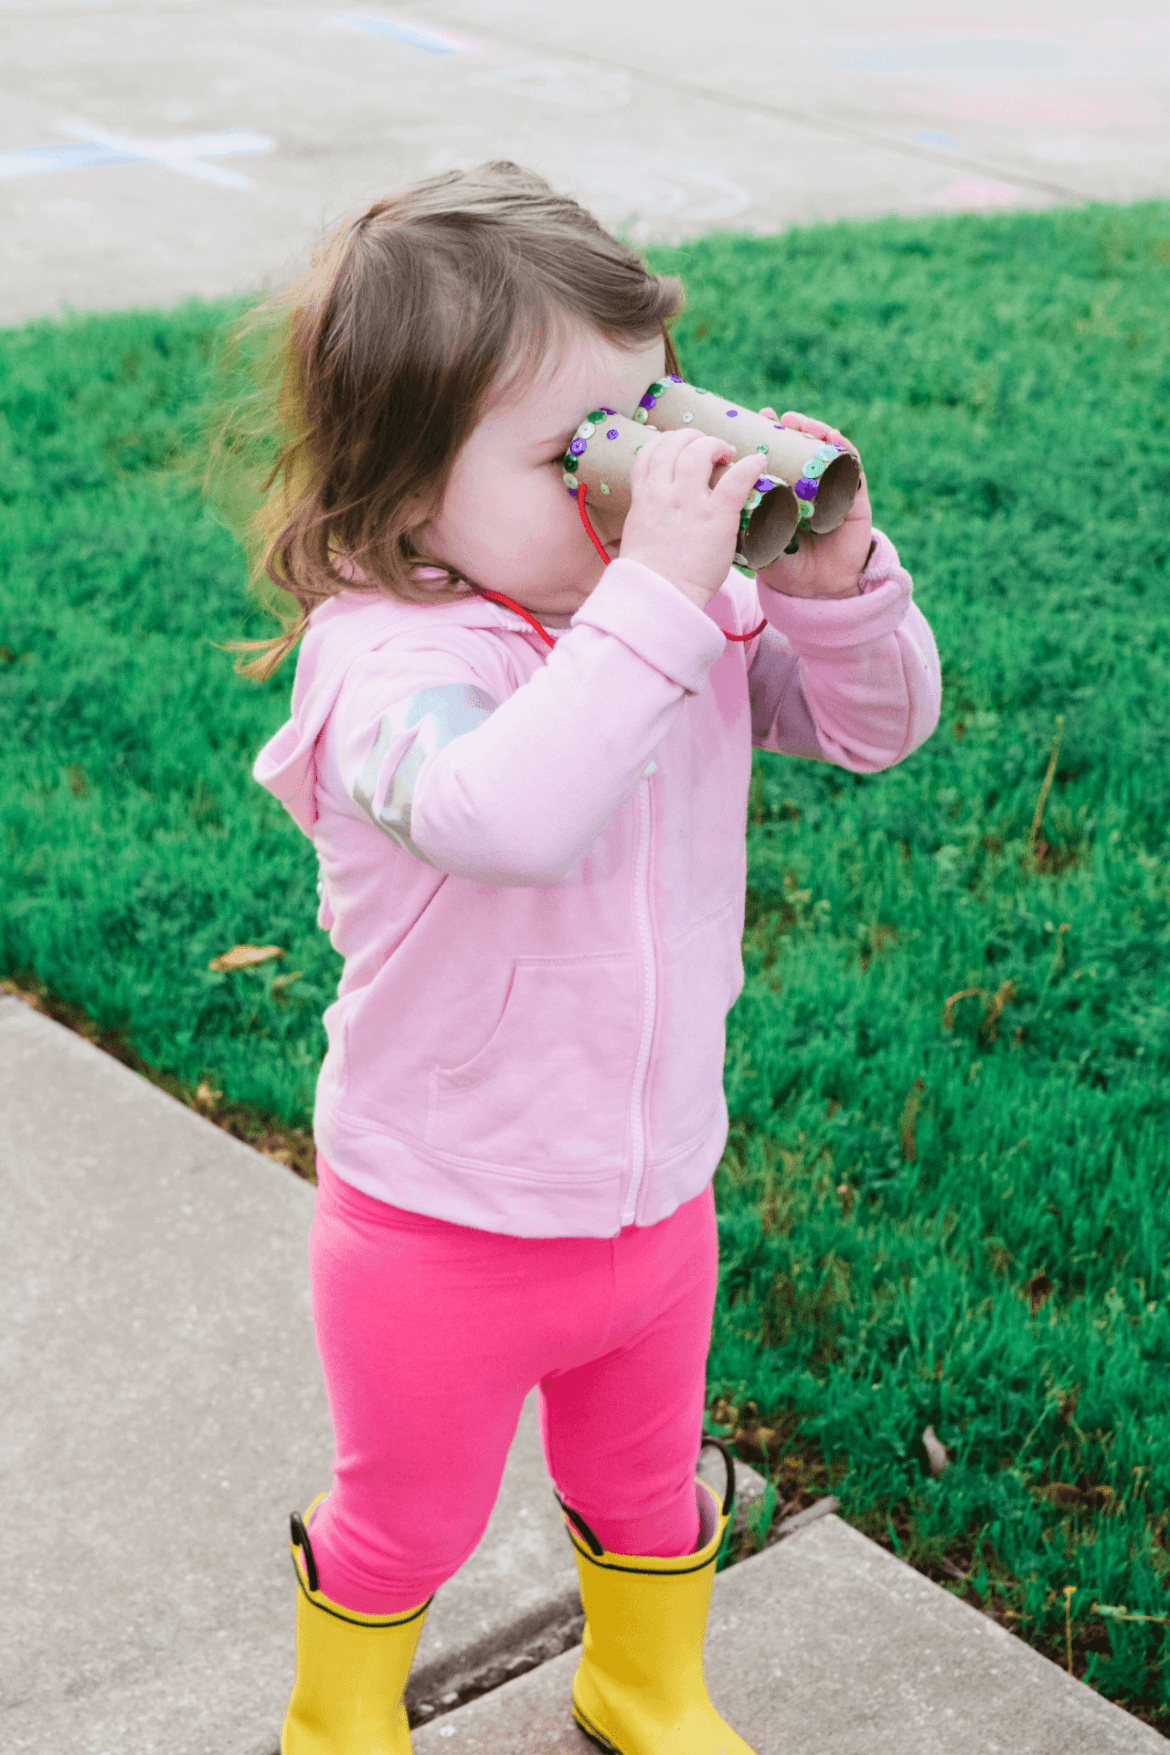 A toddler girl using her toilet paper binoculars for a neighborhood bear scavenger hunt